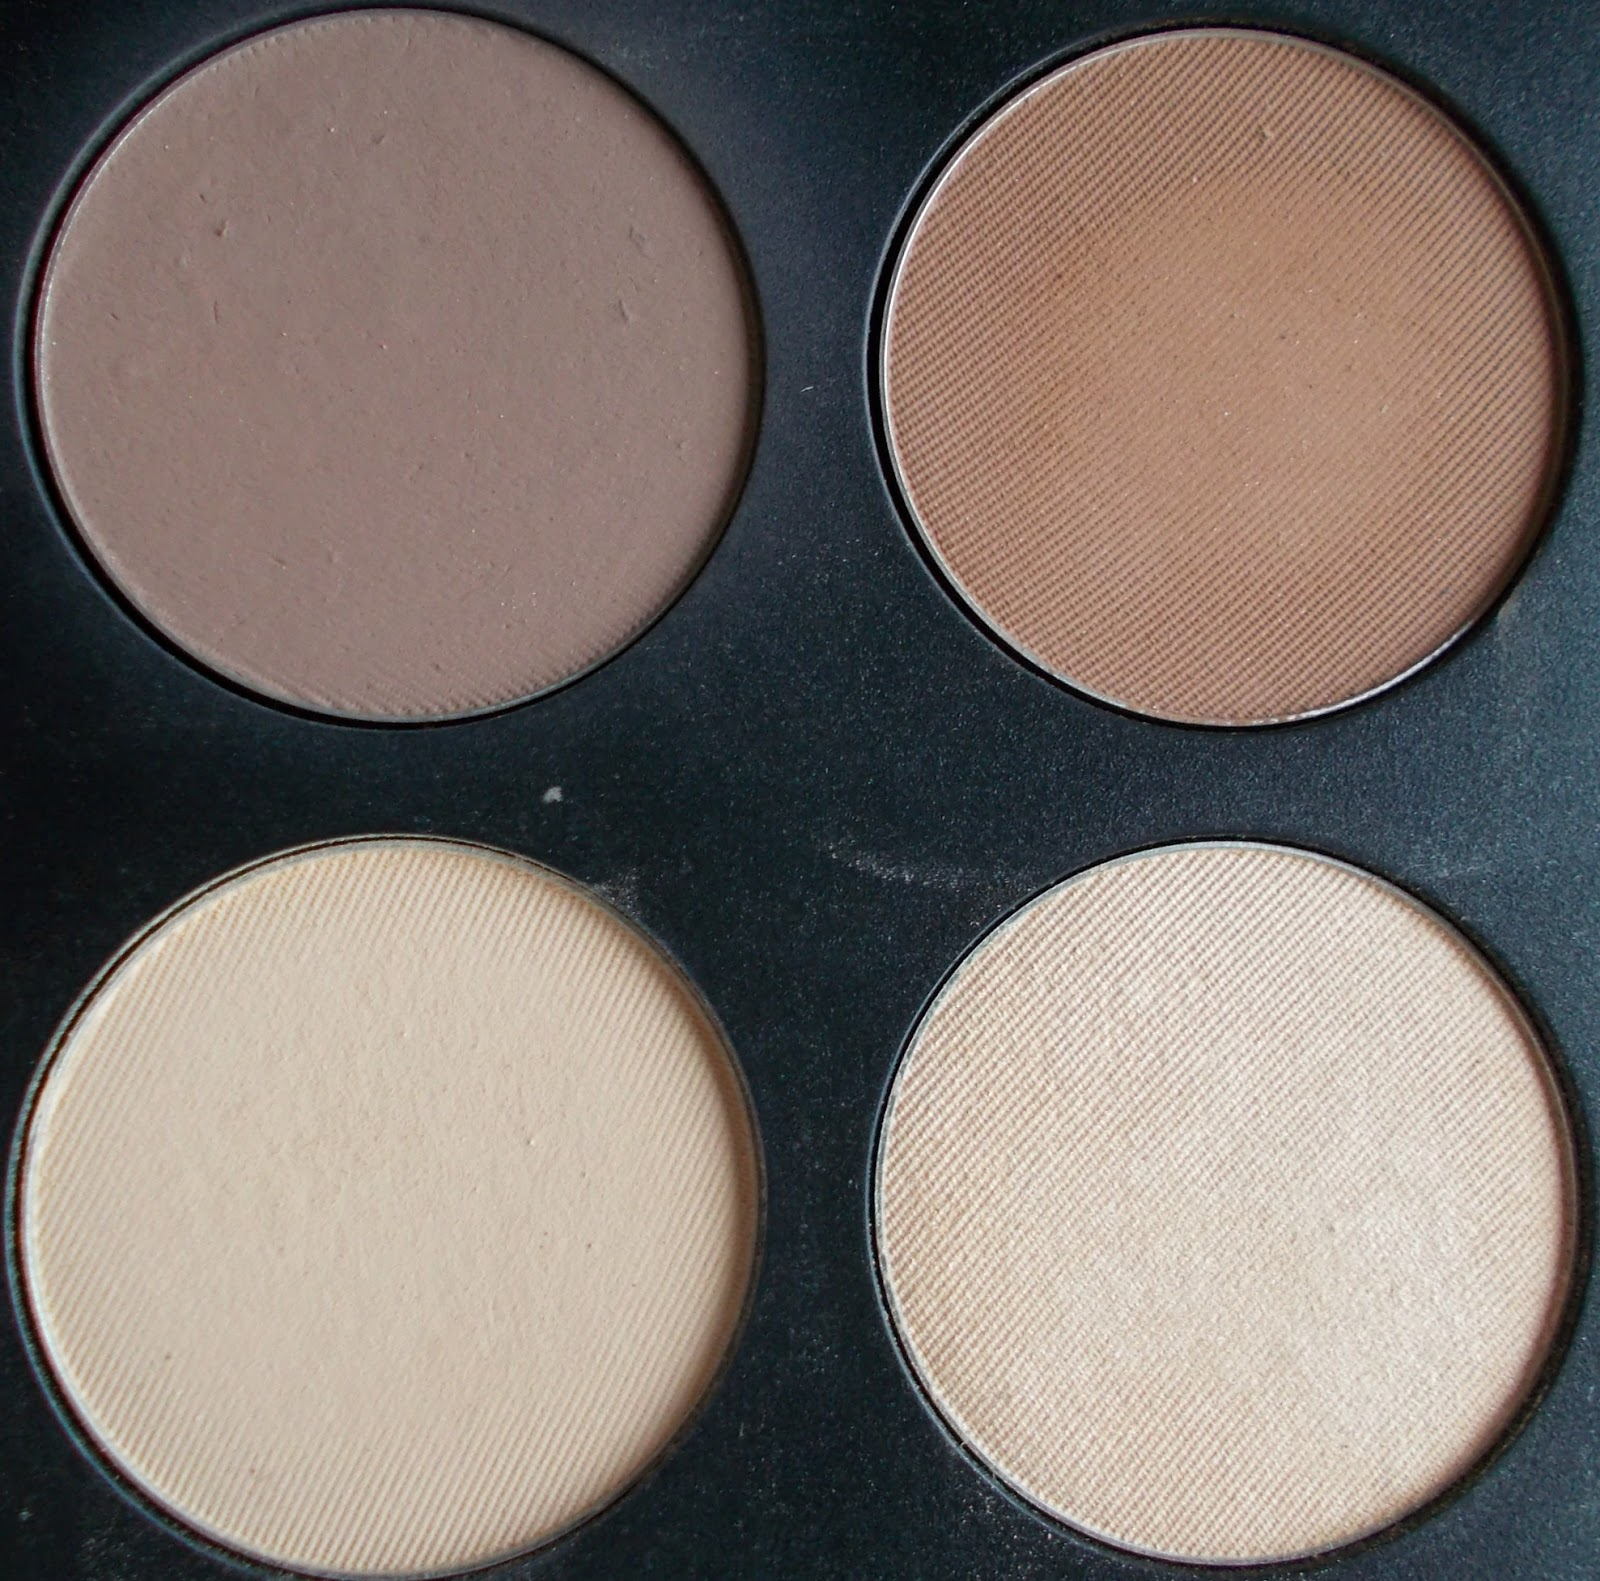 smashbox #shapematters contour powder